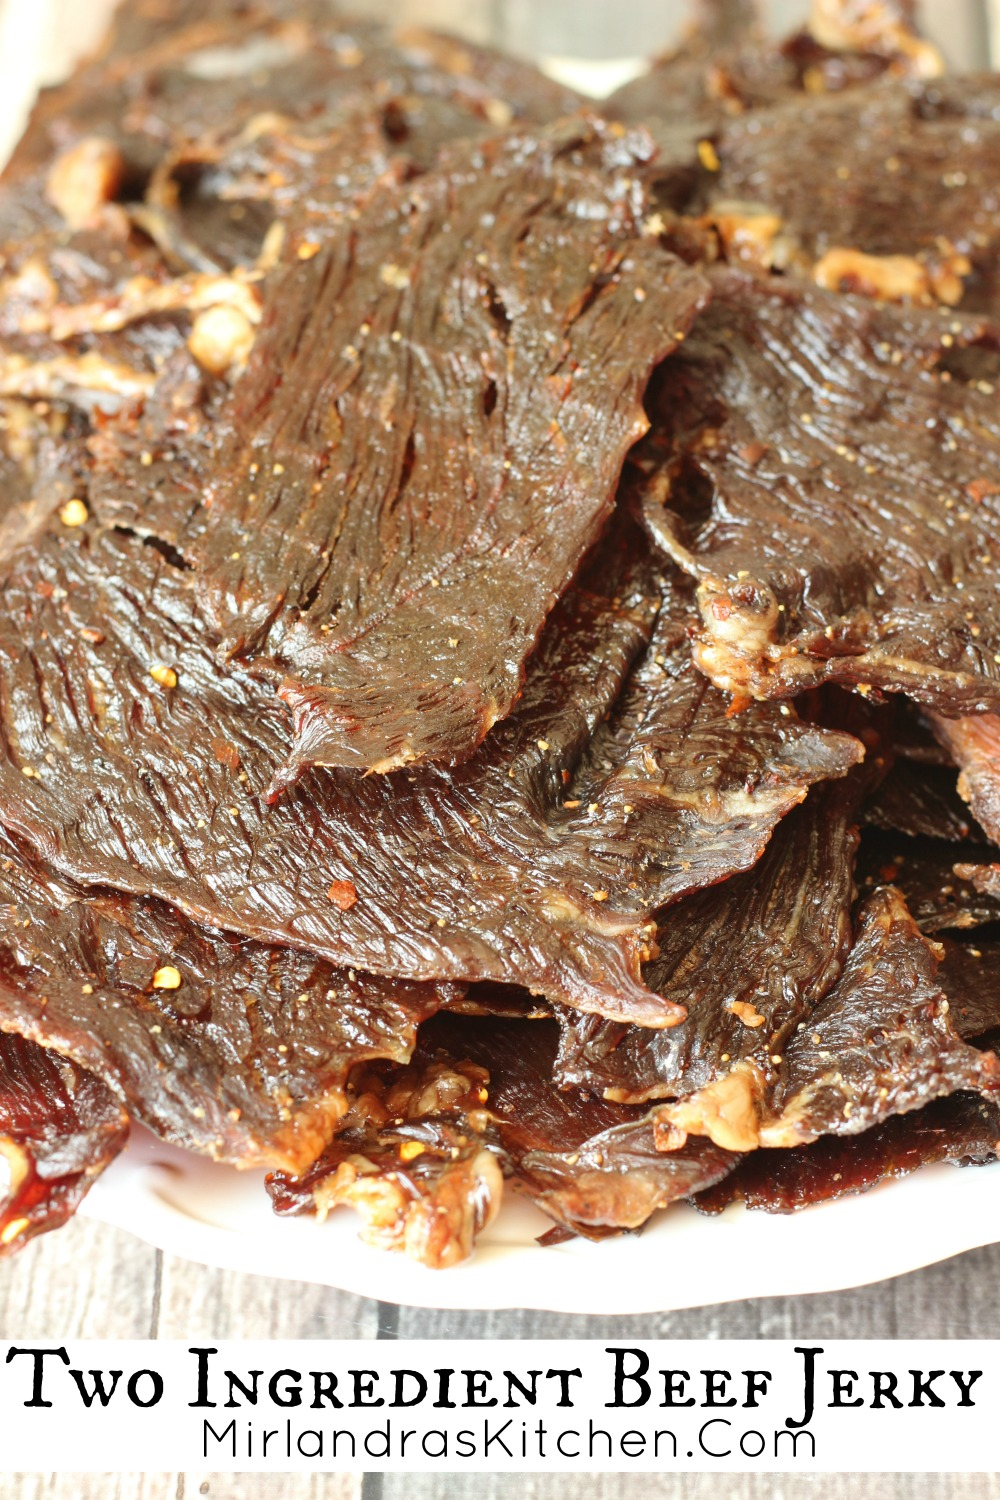 Two Ingredient Beef Jerky